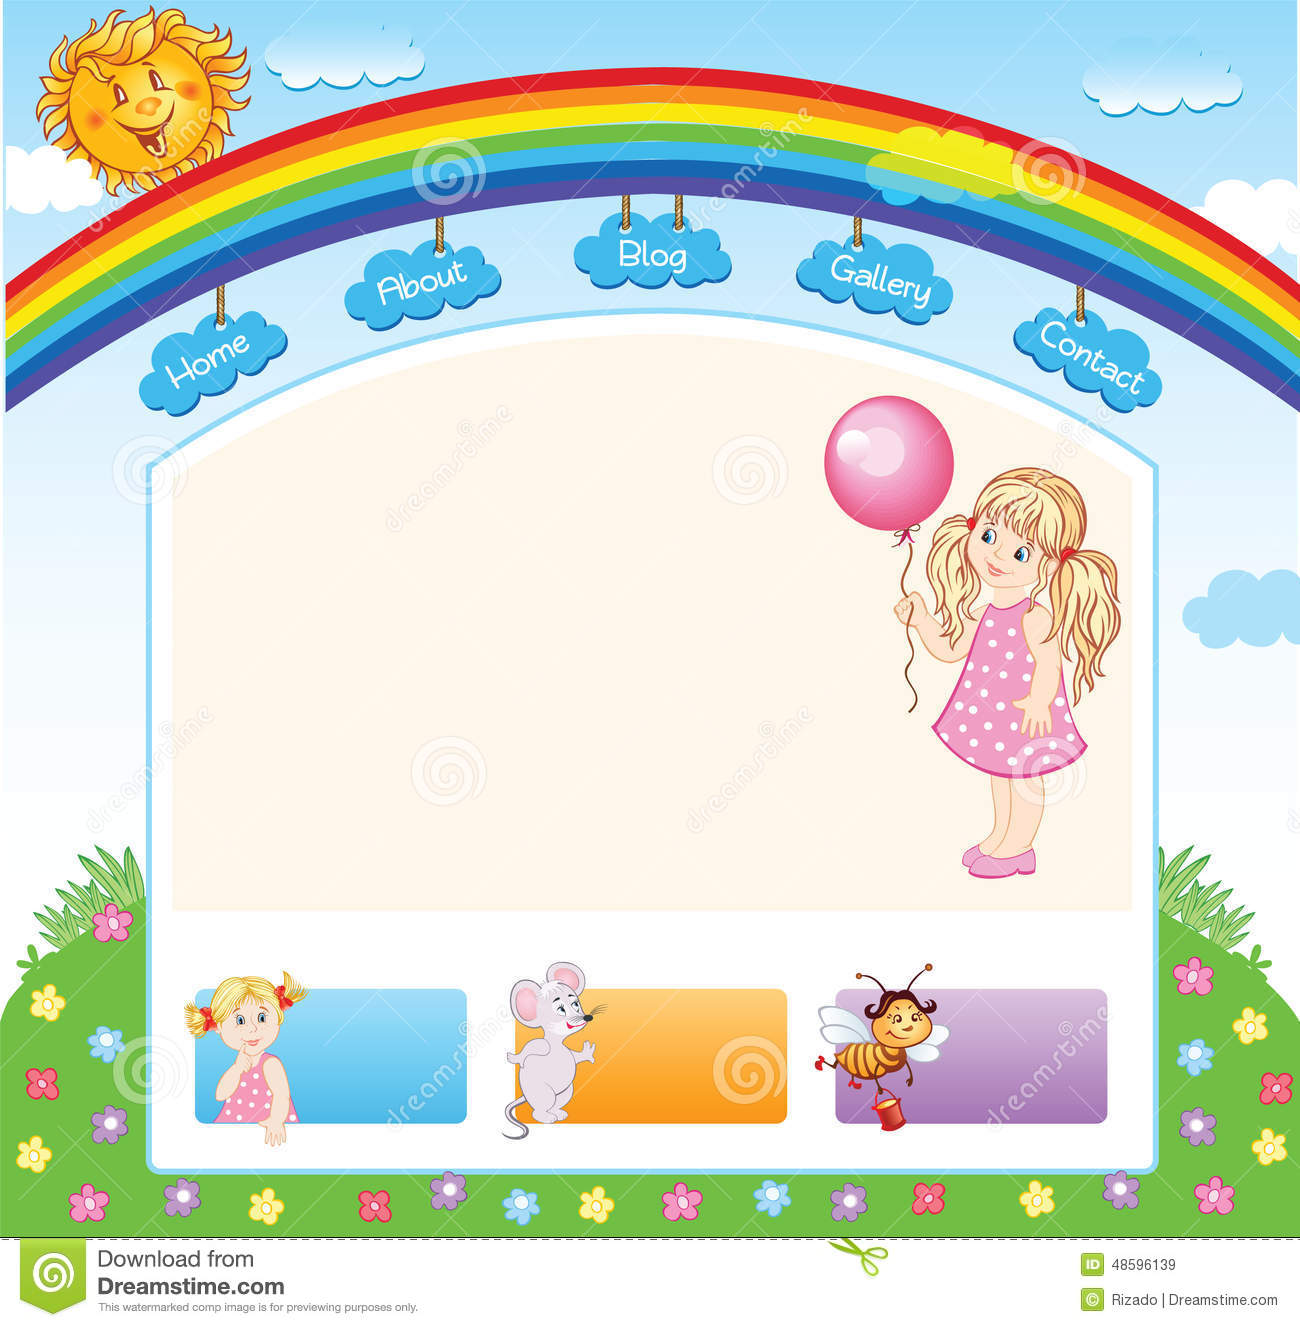 Cartoon Kid Rainbow Template Stock Vector - Image: 48596139